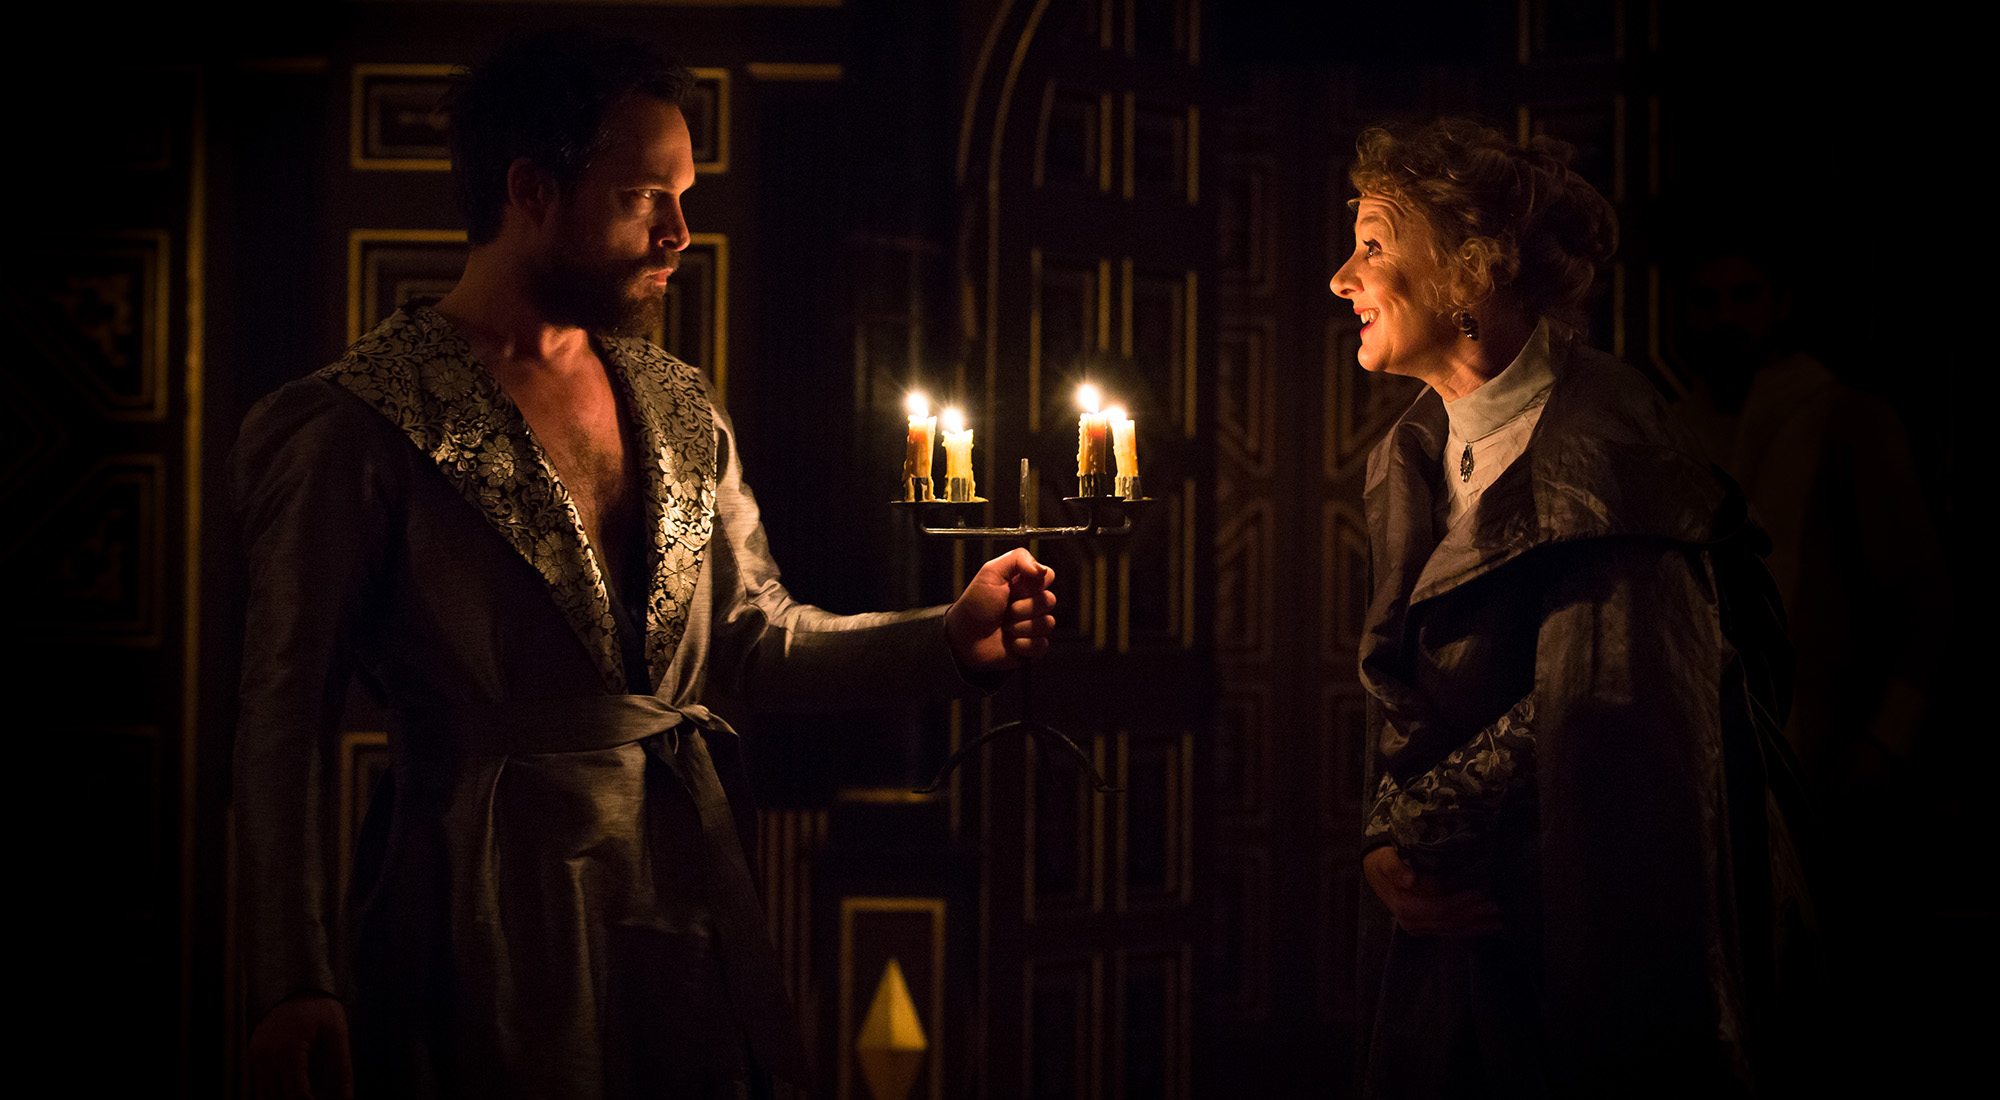 Two actors stand opposite each other with candles in between them